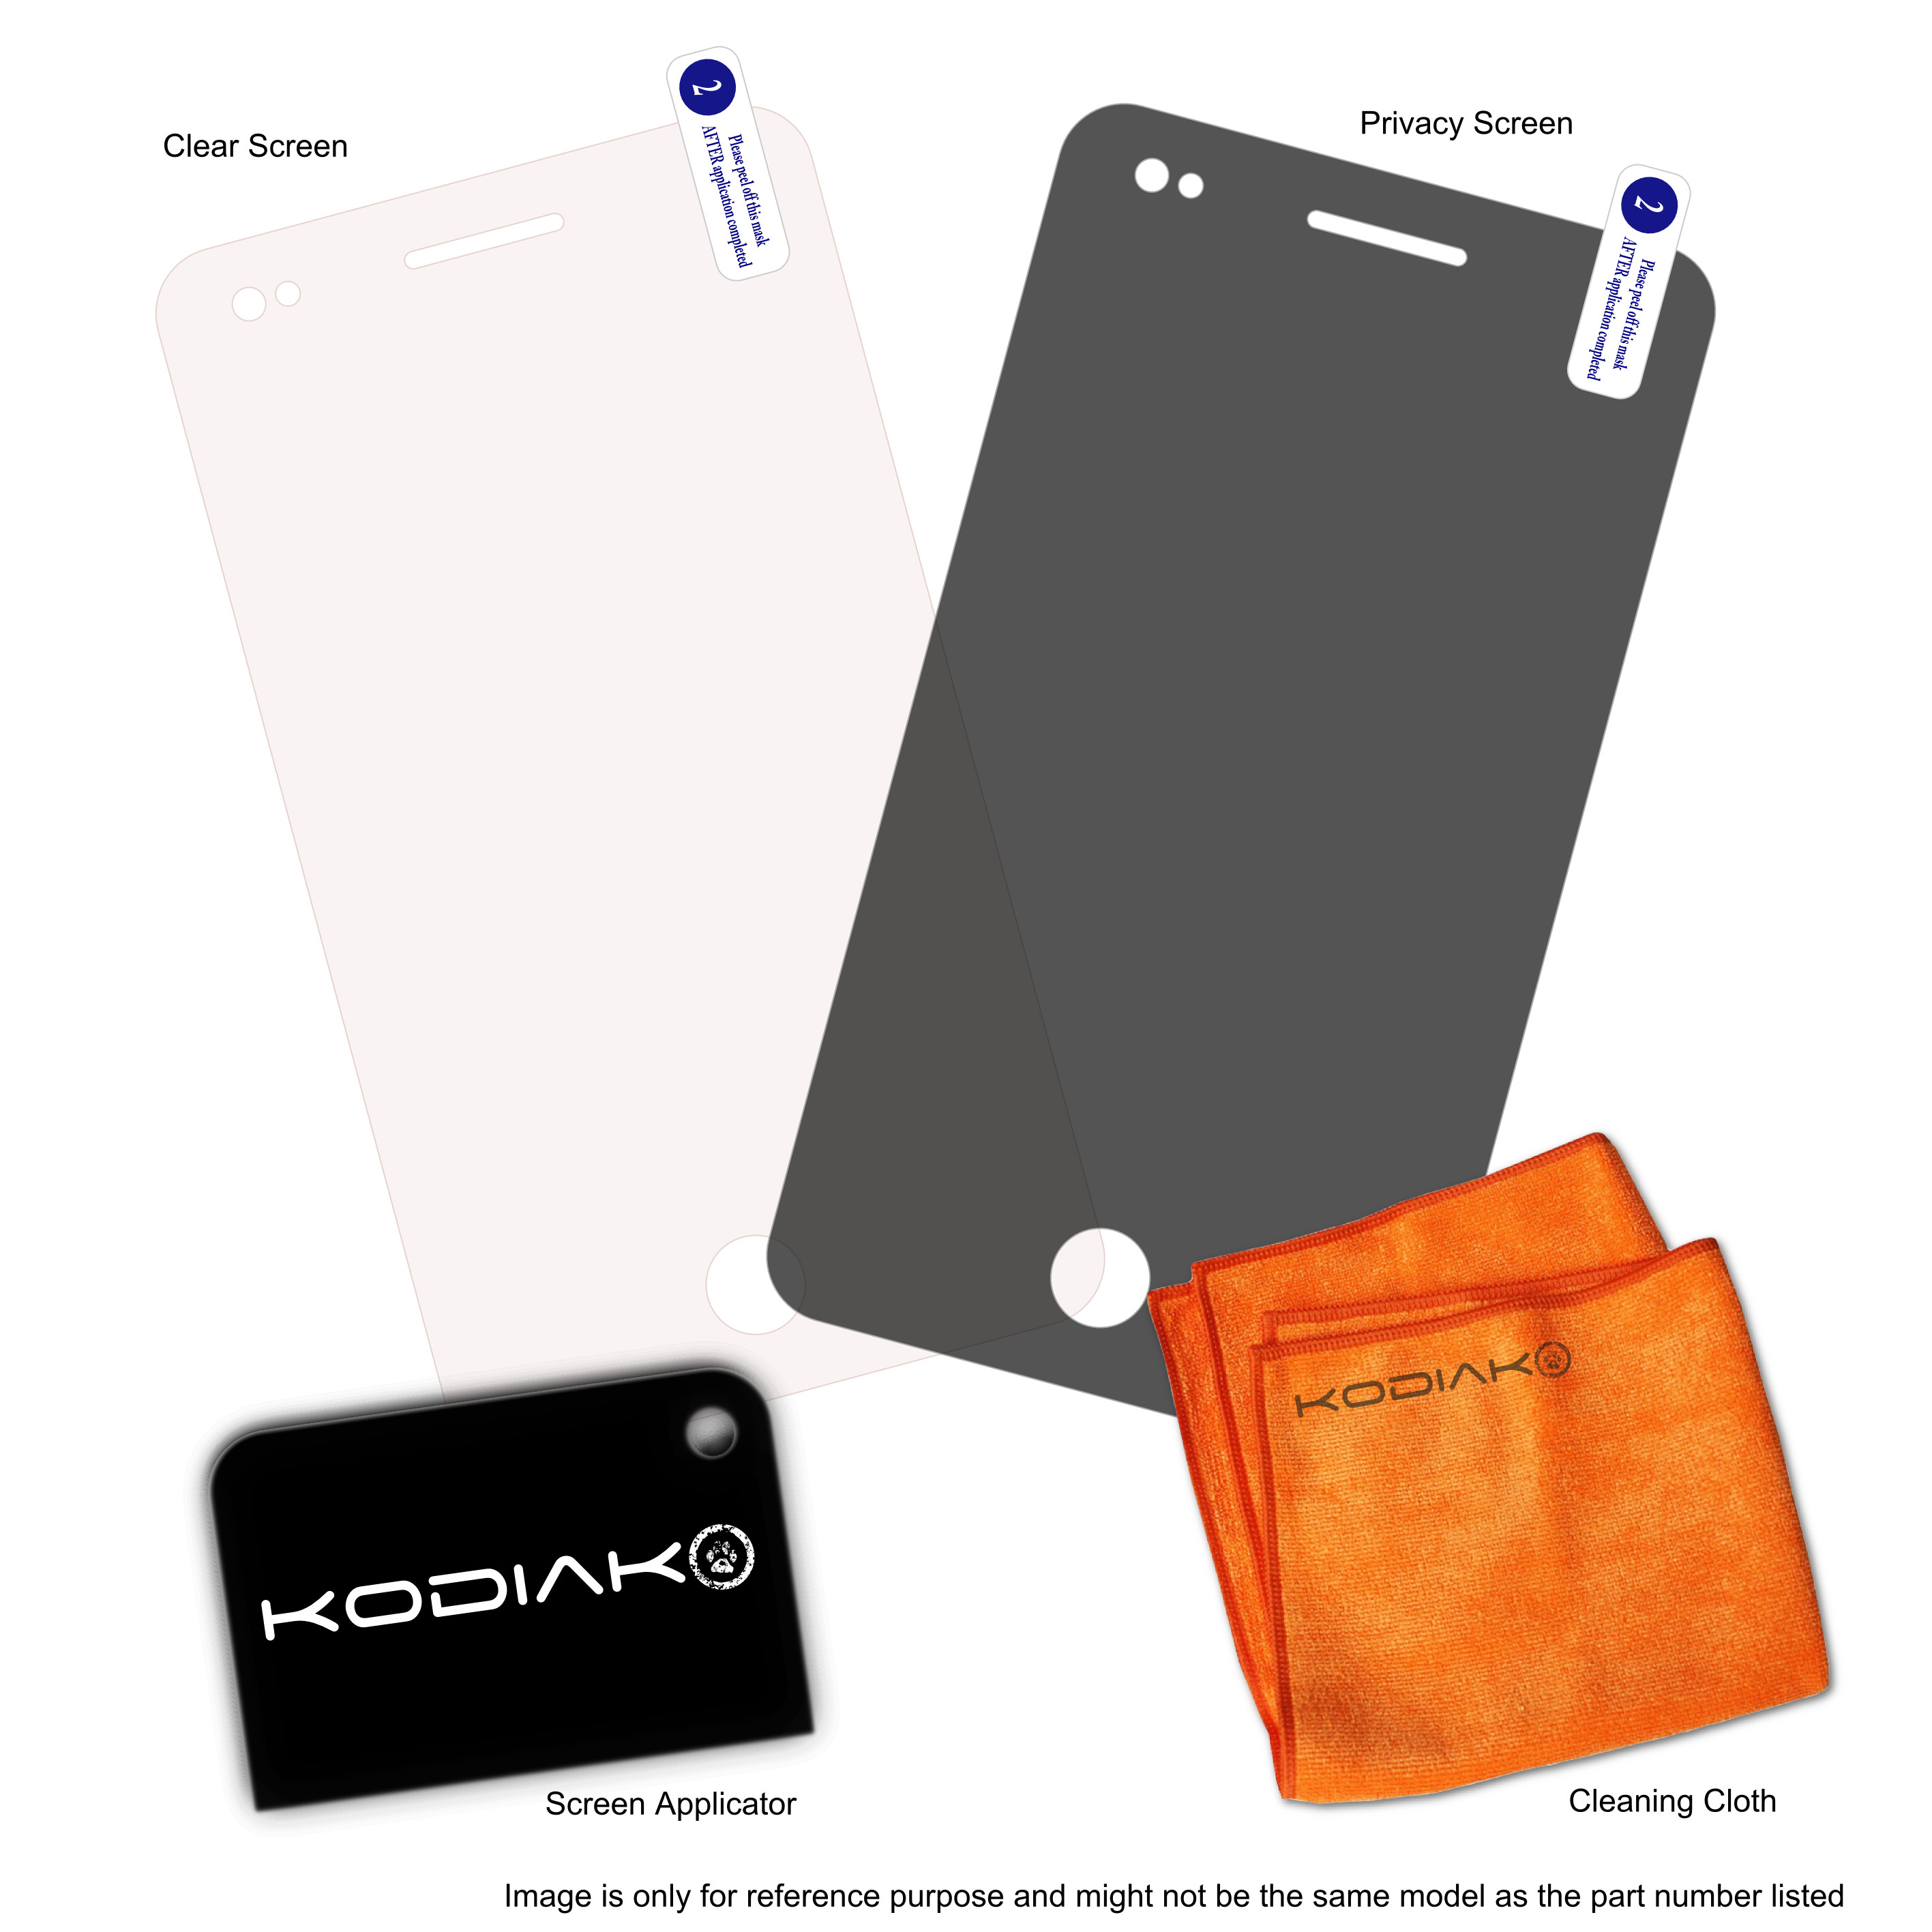 original-kodiak-screen-protector-lg-g2-iprotect-2-package-clear-privacy